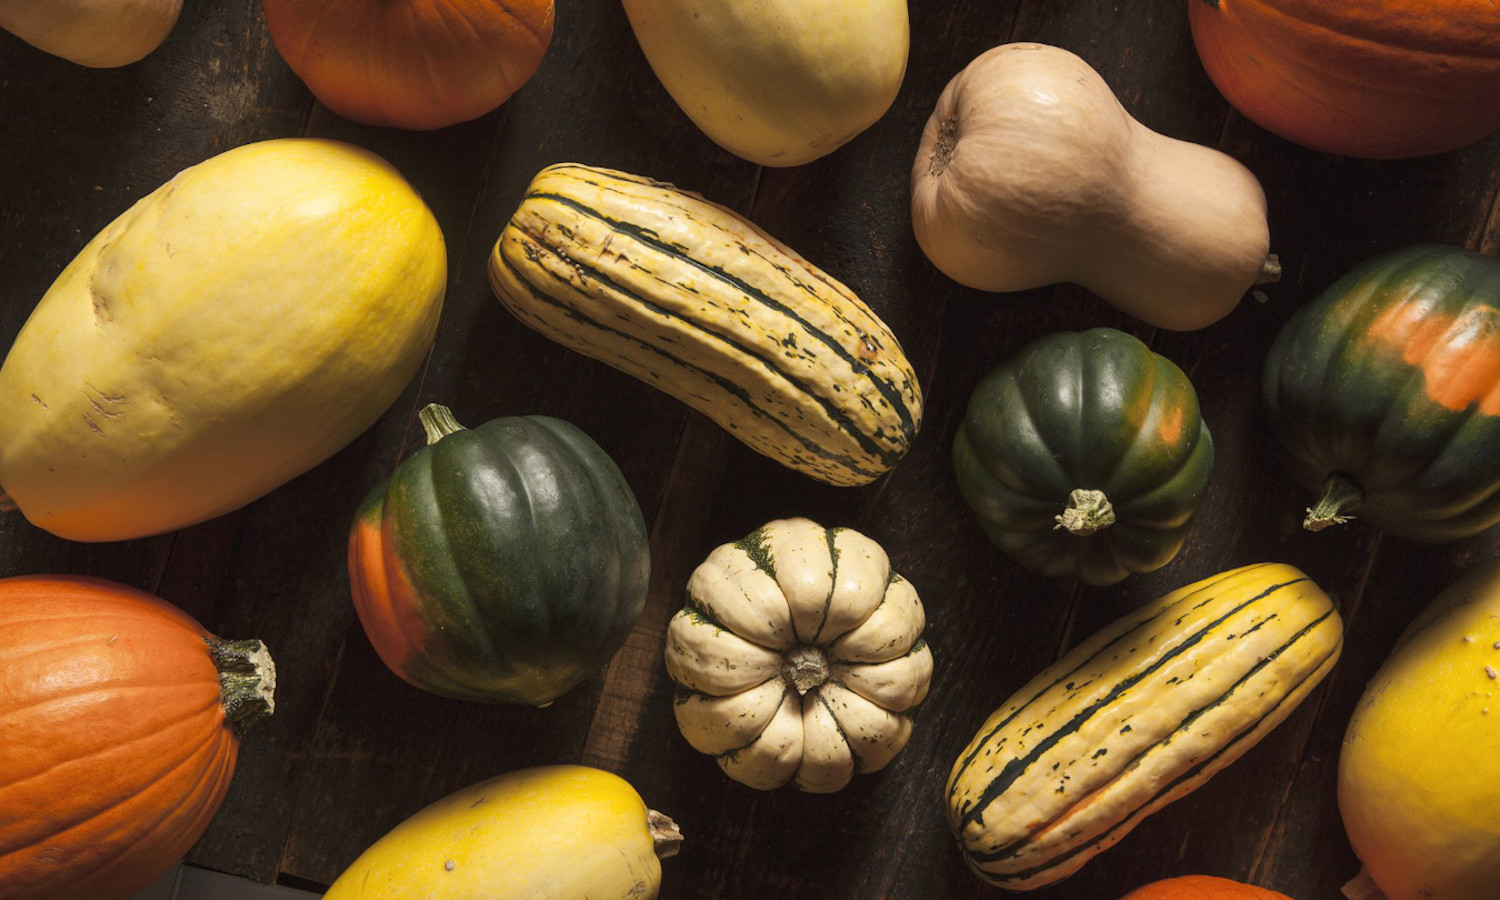 The Seasonal Food Guide and app educates about in-season produce based on the user's location to encourage seasonal eating.